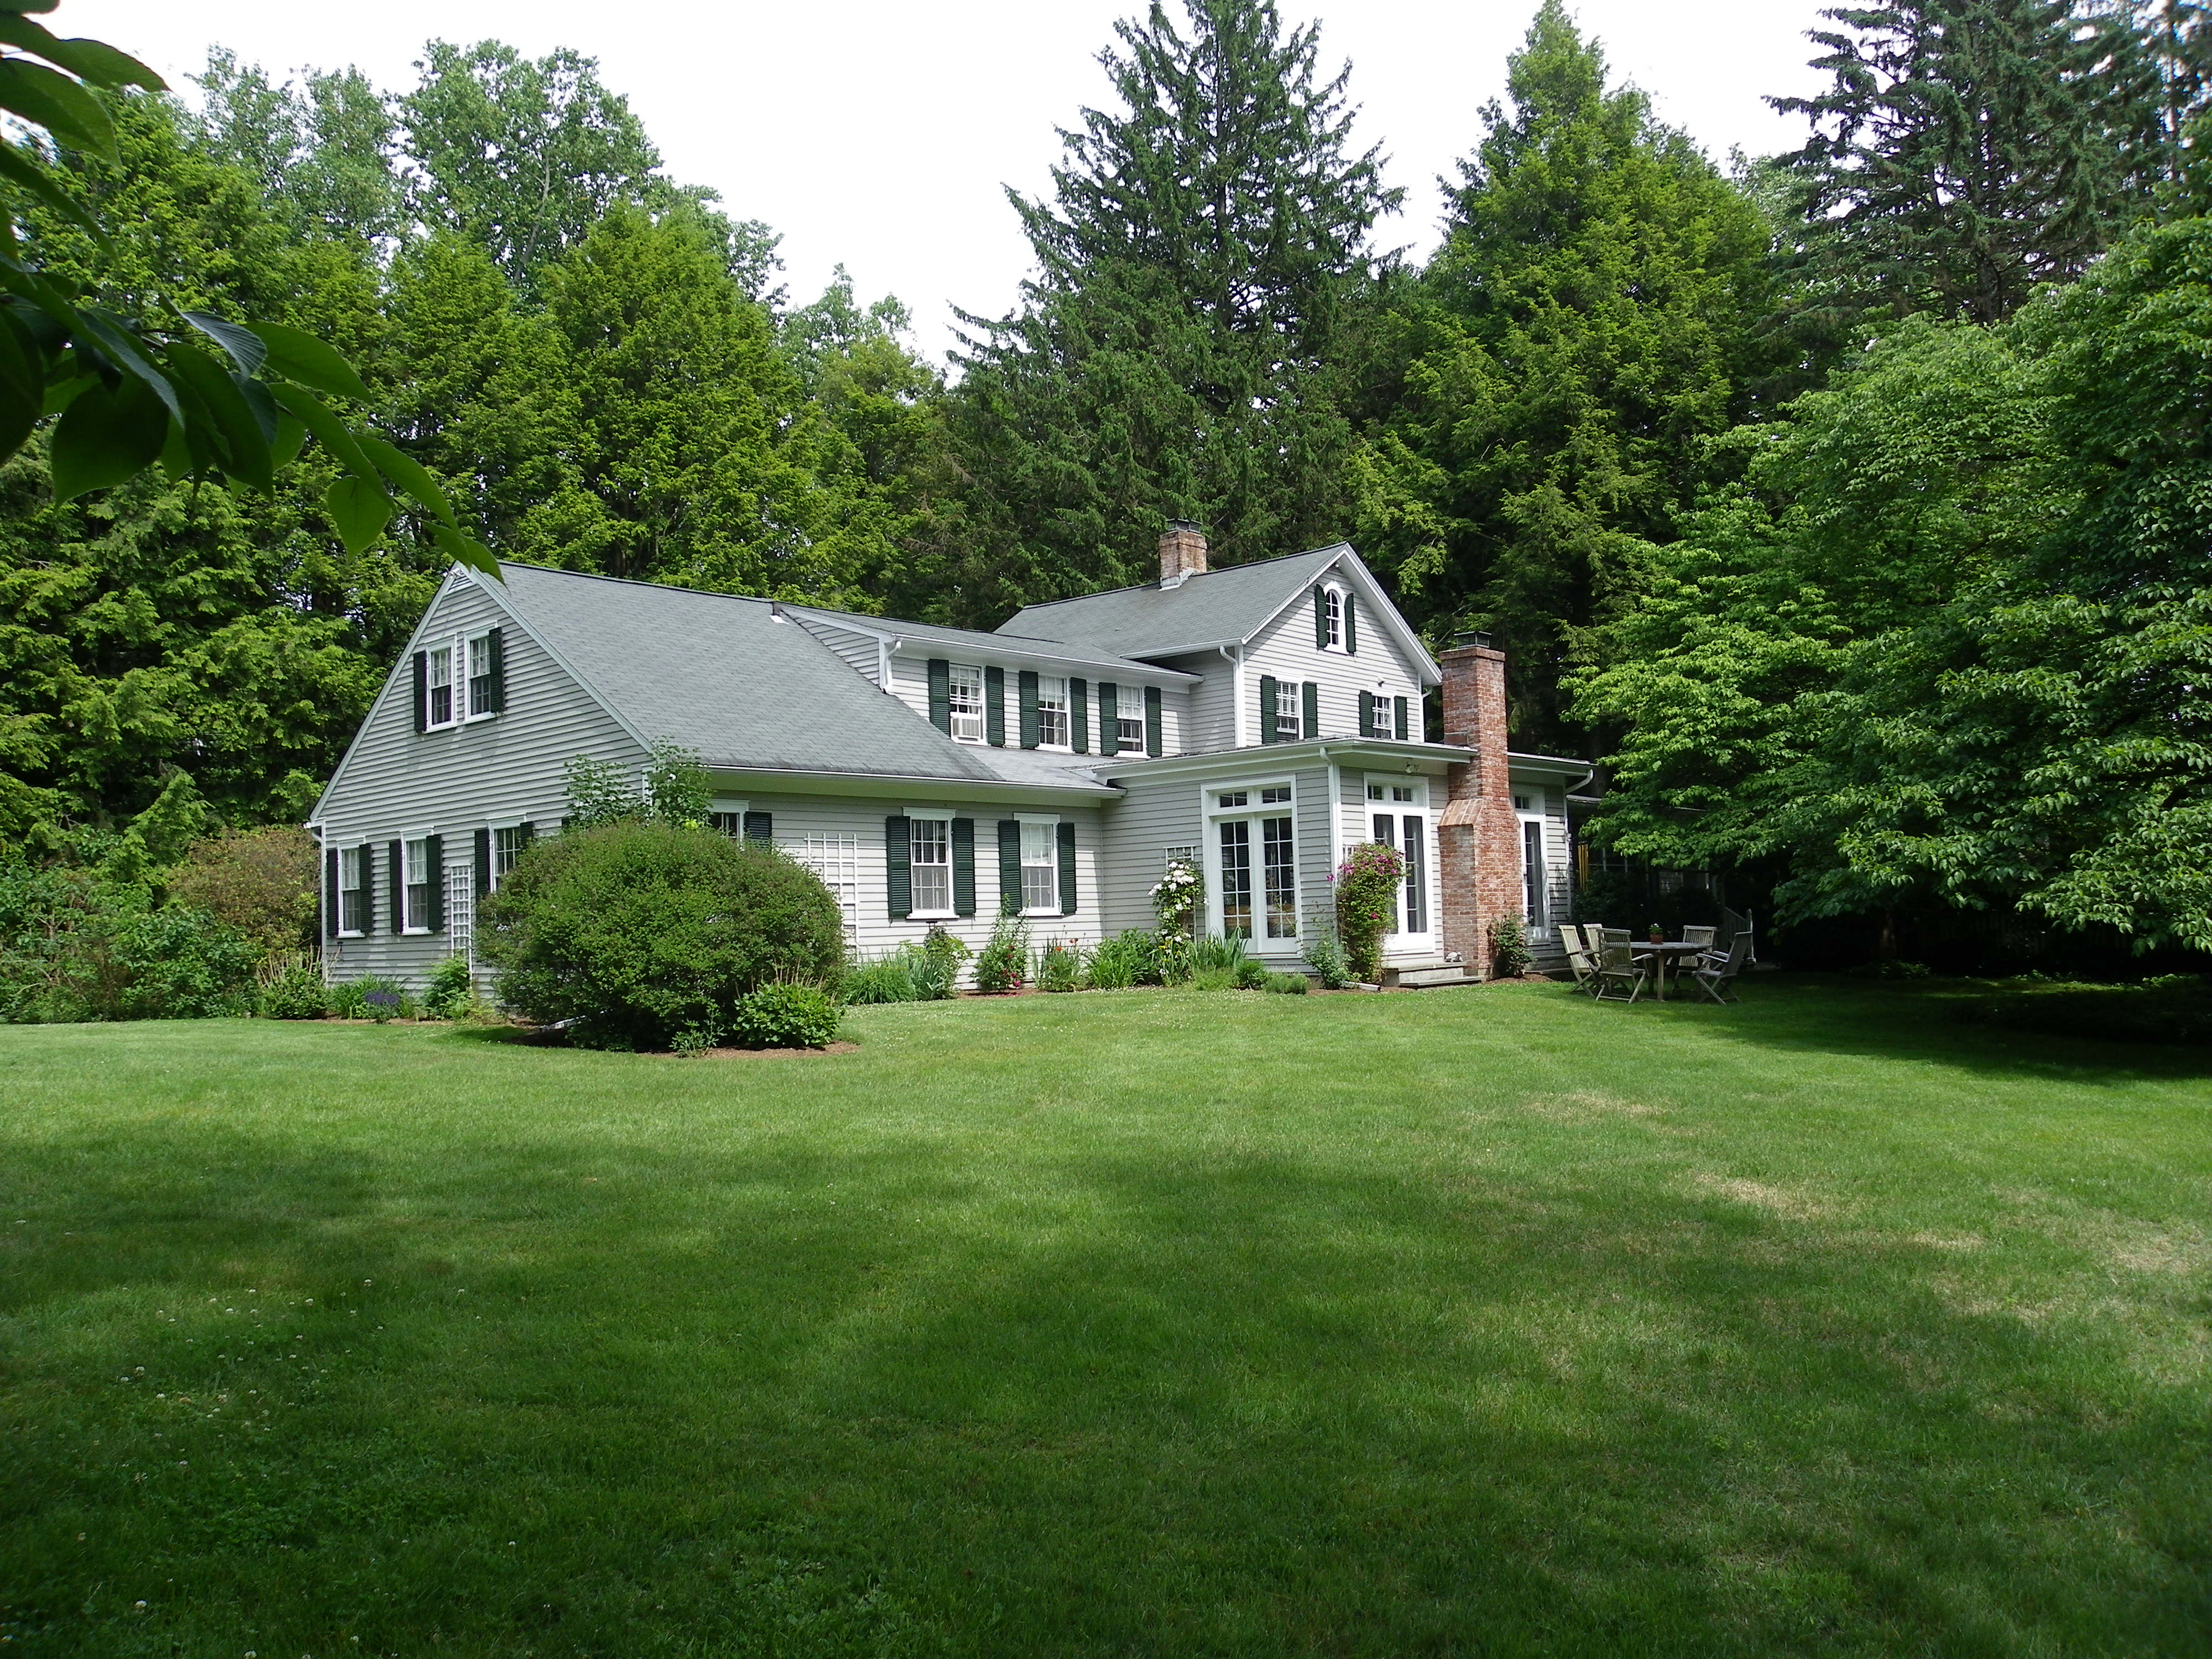 Property For Sale at Farm House in Pastoral Setting